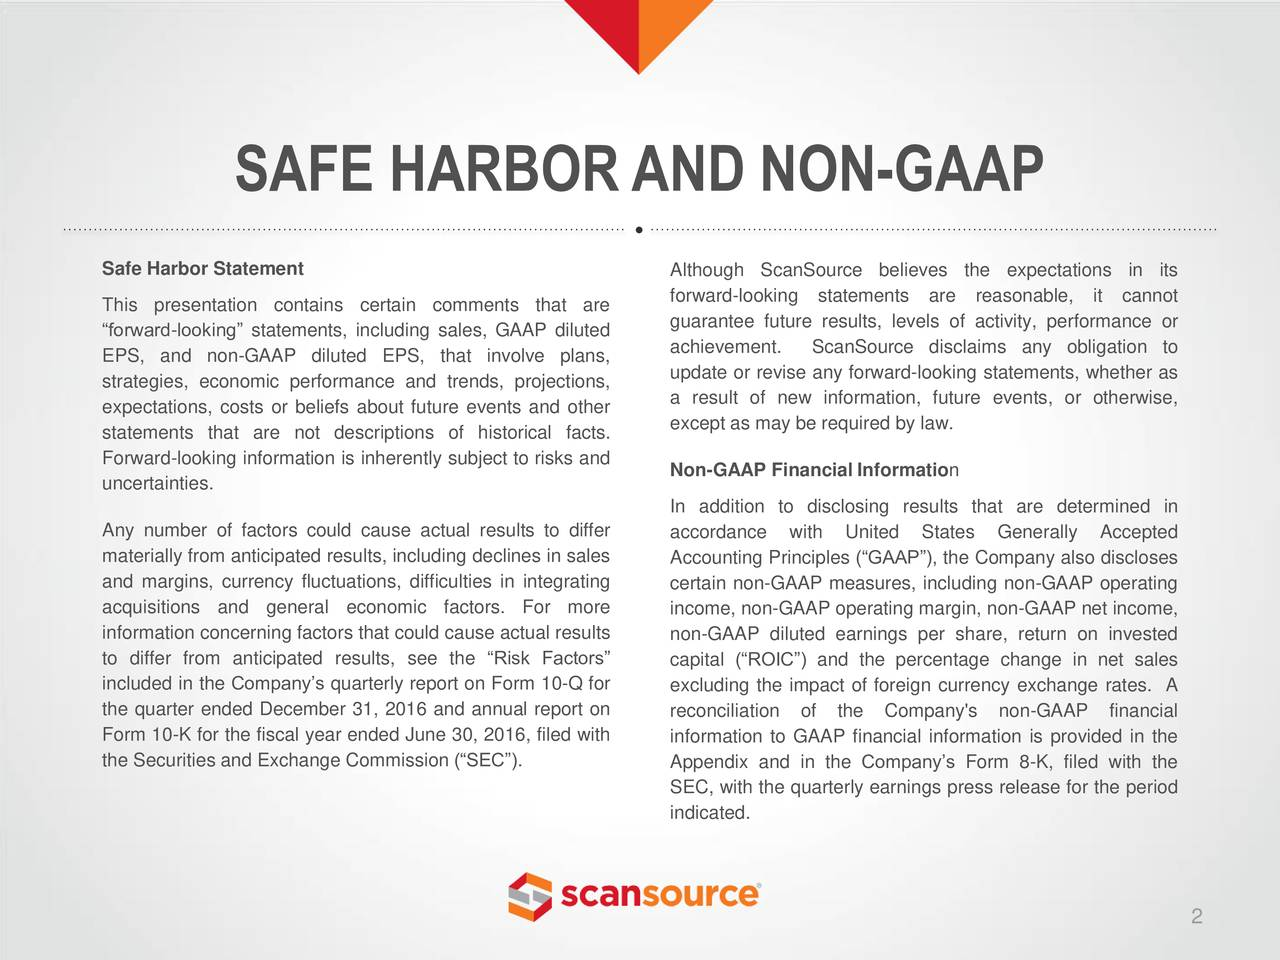 Safe Harbor Statement Although ScanSource believes the expectations in its forward-looking statements are reasonable, it cannot This presentation contains certain comments that are guarantee future results, levels of activity, performance or forward-looking statements, including sales, GAAP diluted EPS, and non-GAAP diluted EPS, that involve plans, achievement. ScanSource disclaims any obligation to update or revise any forward-looking statements, whether as strategies, economic performance and trends, projections, a result of new information, future events, or otherwise, expectations, costs or beliefs about future events and other statements that are not descriptions of historical facts. except as may be required by law. Forward-looking information is inherently subject to risks and Non-GAAP Financial Information uncertainties. In addition to disclosing results that are determined in Any number of factors could cause actual results to differ accordance with United States Generally Accepted materially from anticipated results, including declines in saleAccounting Principles (GAAP), the Company also discloses and margins, currency fluctuations, difficulties in integratingcertain non-GAAP measures, including non-GAAP operating acquisitions and general economic factors. For more income, non-GAAP operating margin, non-GAAP net income, information concerning factors that could cause actual results non-GAAP diluted earnings per share, return on invested to differ from anticipated results, see the Risk Factors capital (ROIC) and the percentage change in net sales included in the Companys quarterly report on Form 10-Q for excluding the impact of foreign currency exchange rates. A the quarter ended December 31, 2016 and annual report on reconciliation of the Company's non-GAAP financial Form 10-K for the fiscal year ended June 30, 2016, filed with information to GAAP financial information is provided in the the Securities and Exchange Commission (SEC). Appendix and in the Companys Form 8-K, filed with the SEC, with the quarterly earnings press release for the period indicated. 2